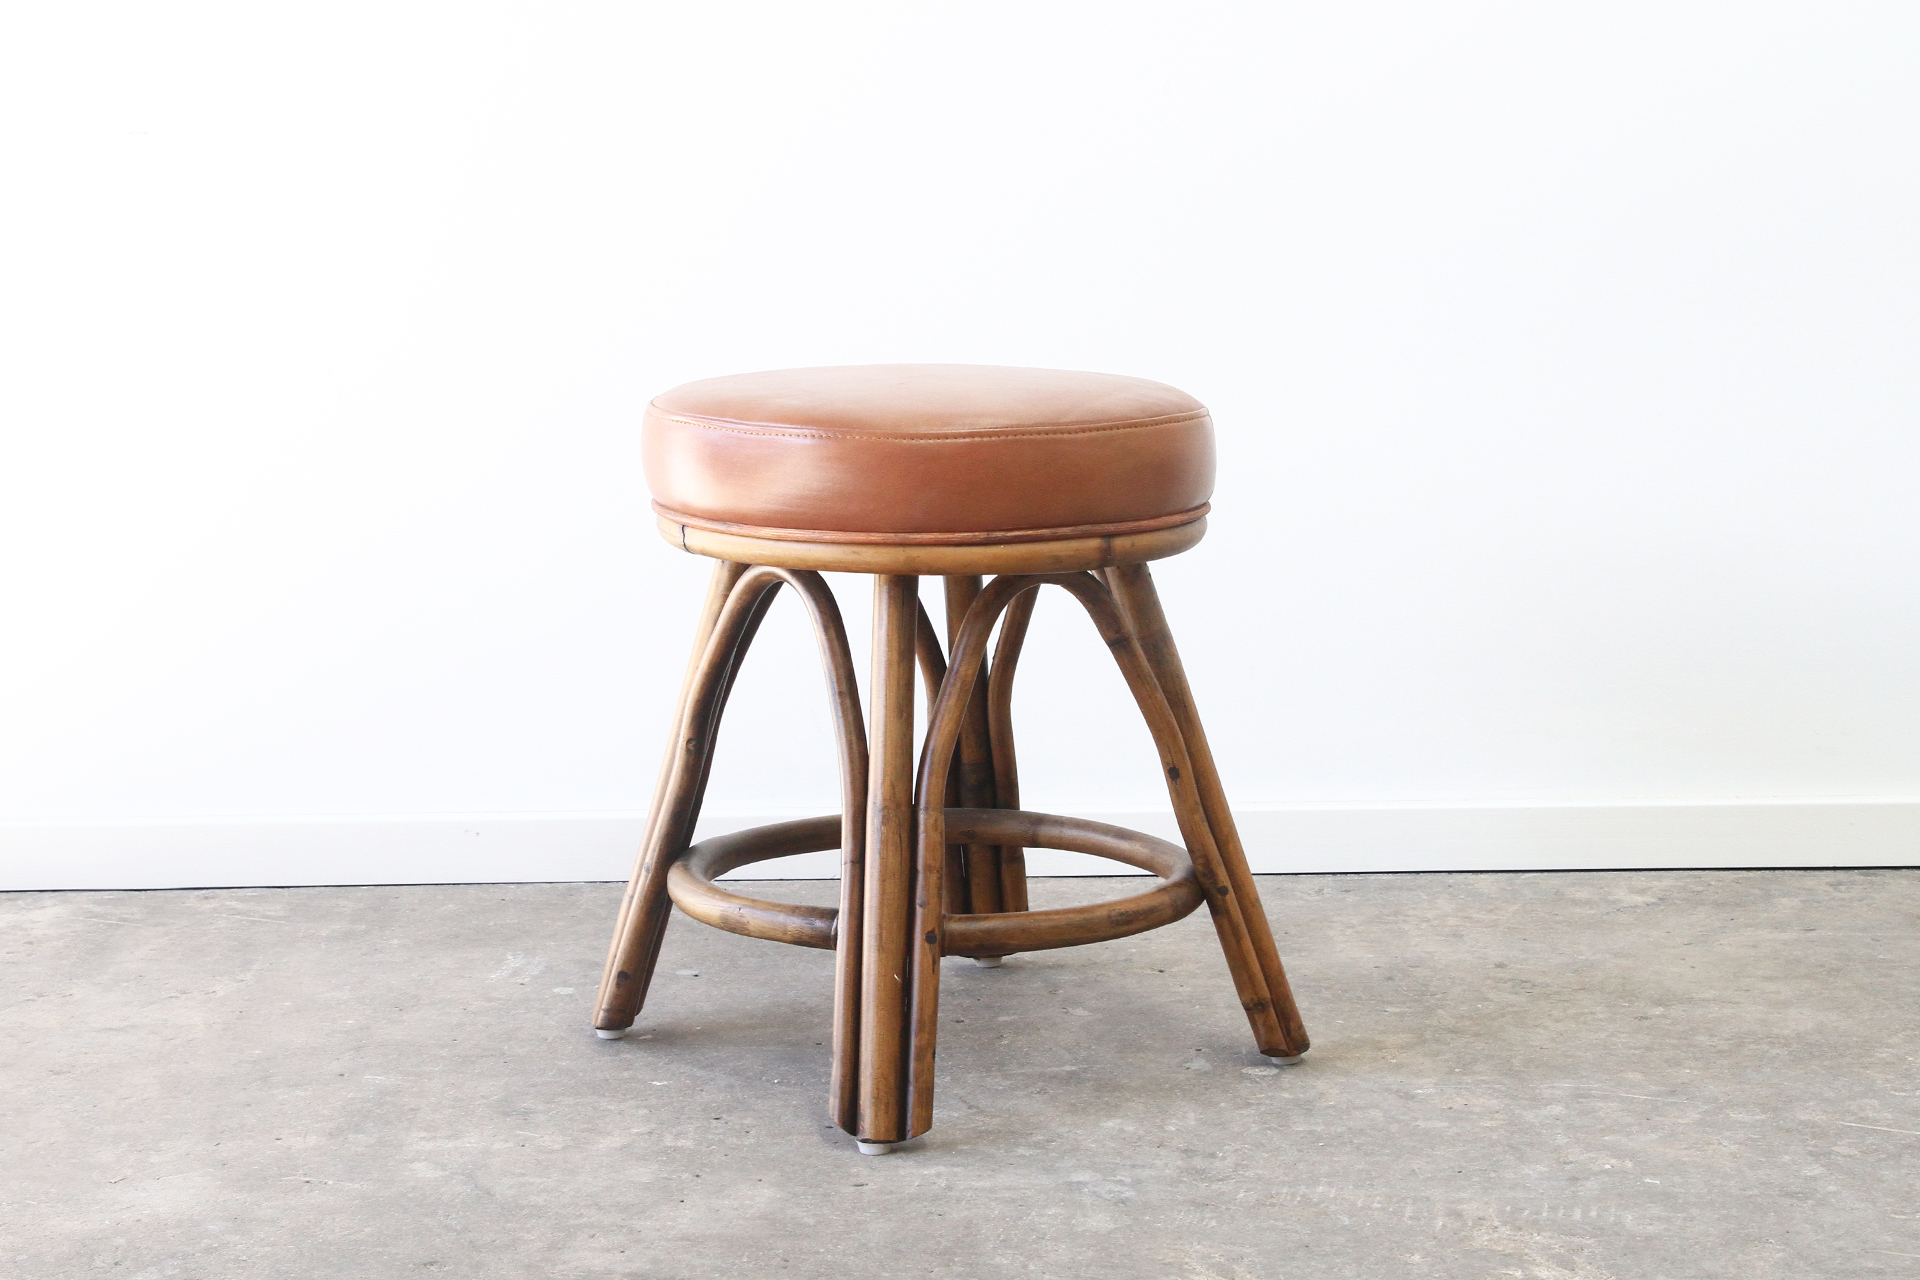 Leather and Rattan stool